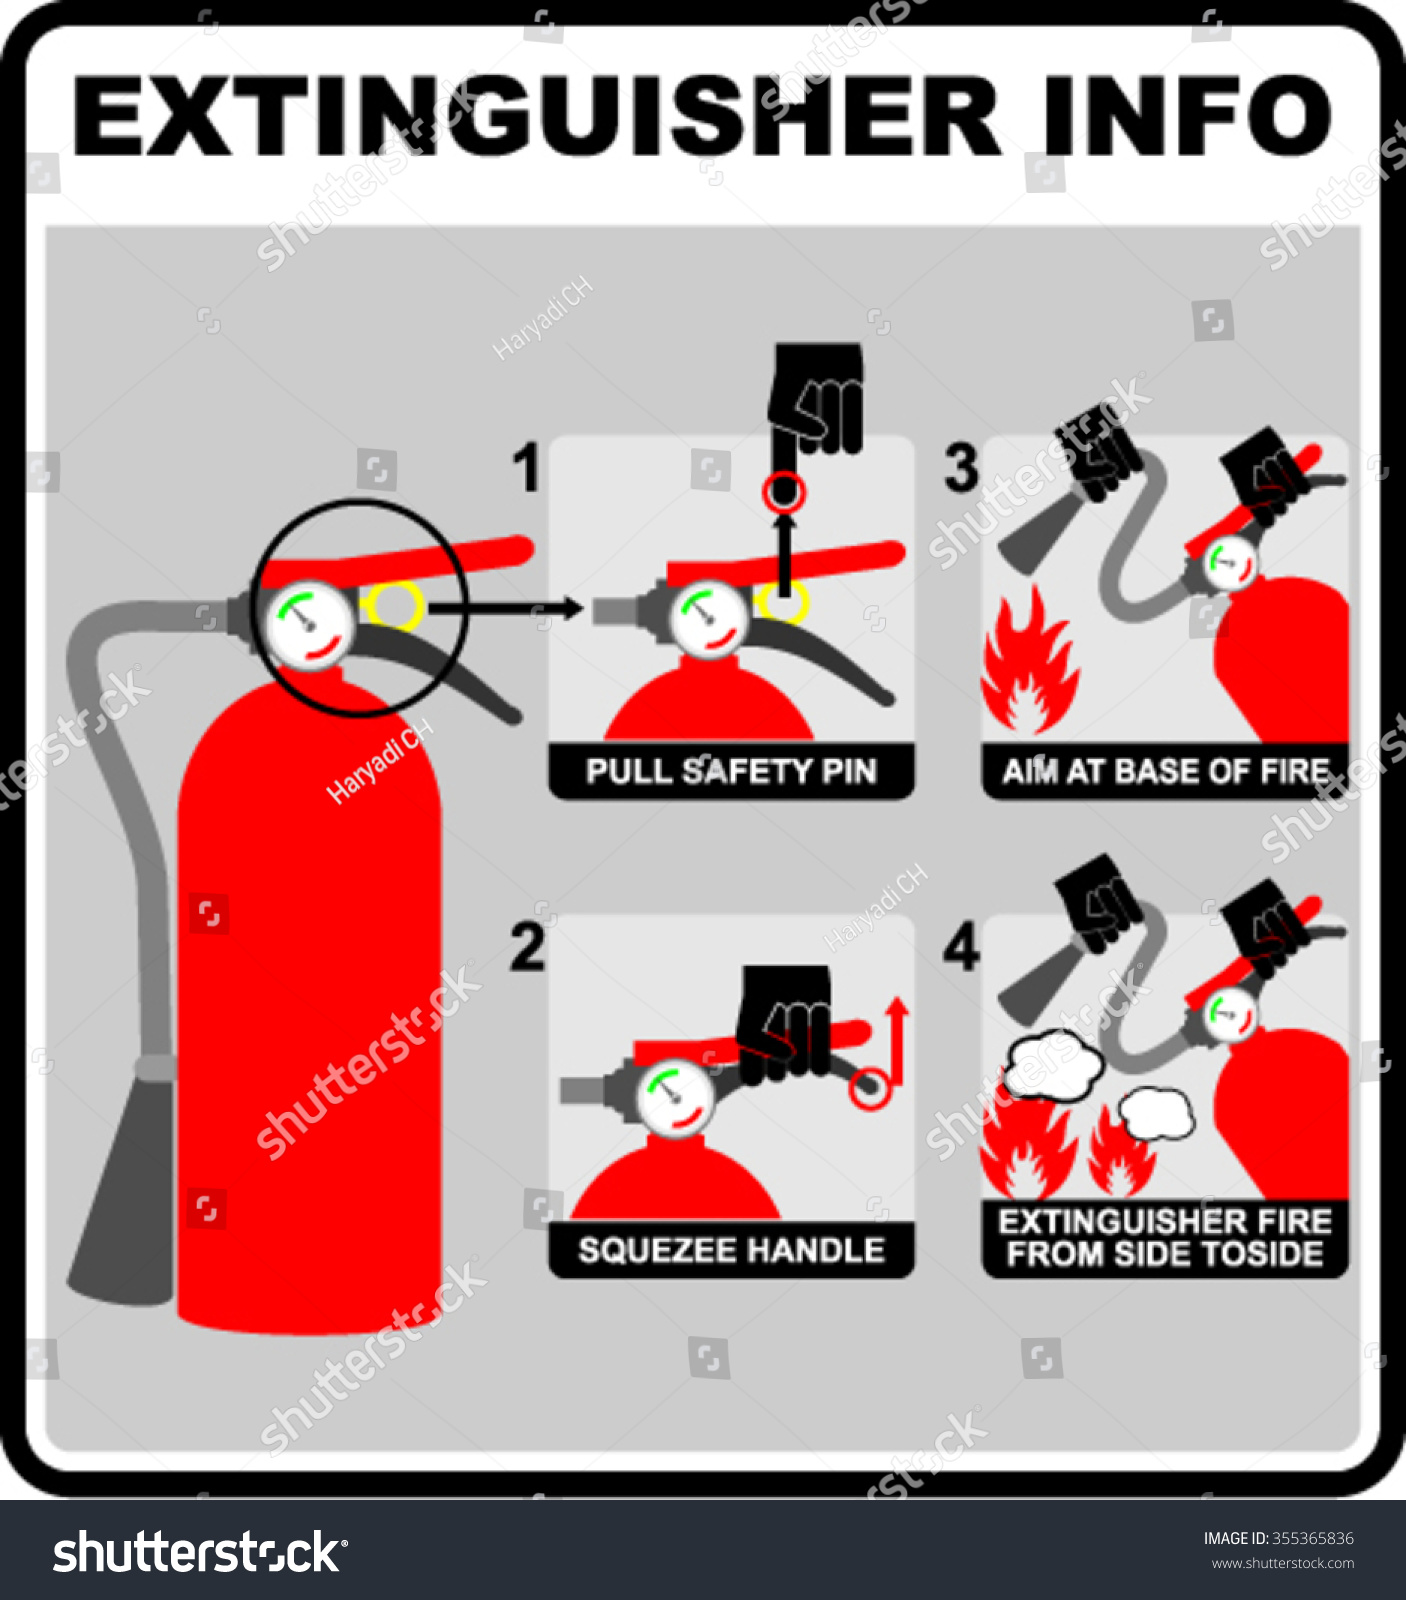 mnemonic pass how to use a fire extinguisher